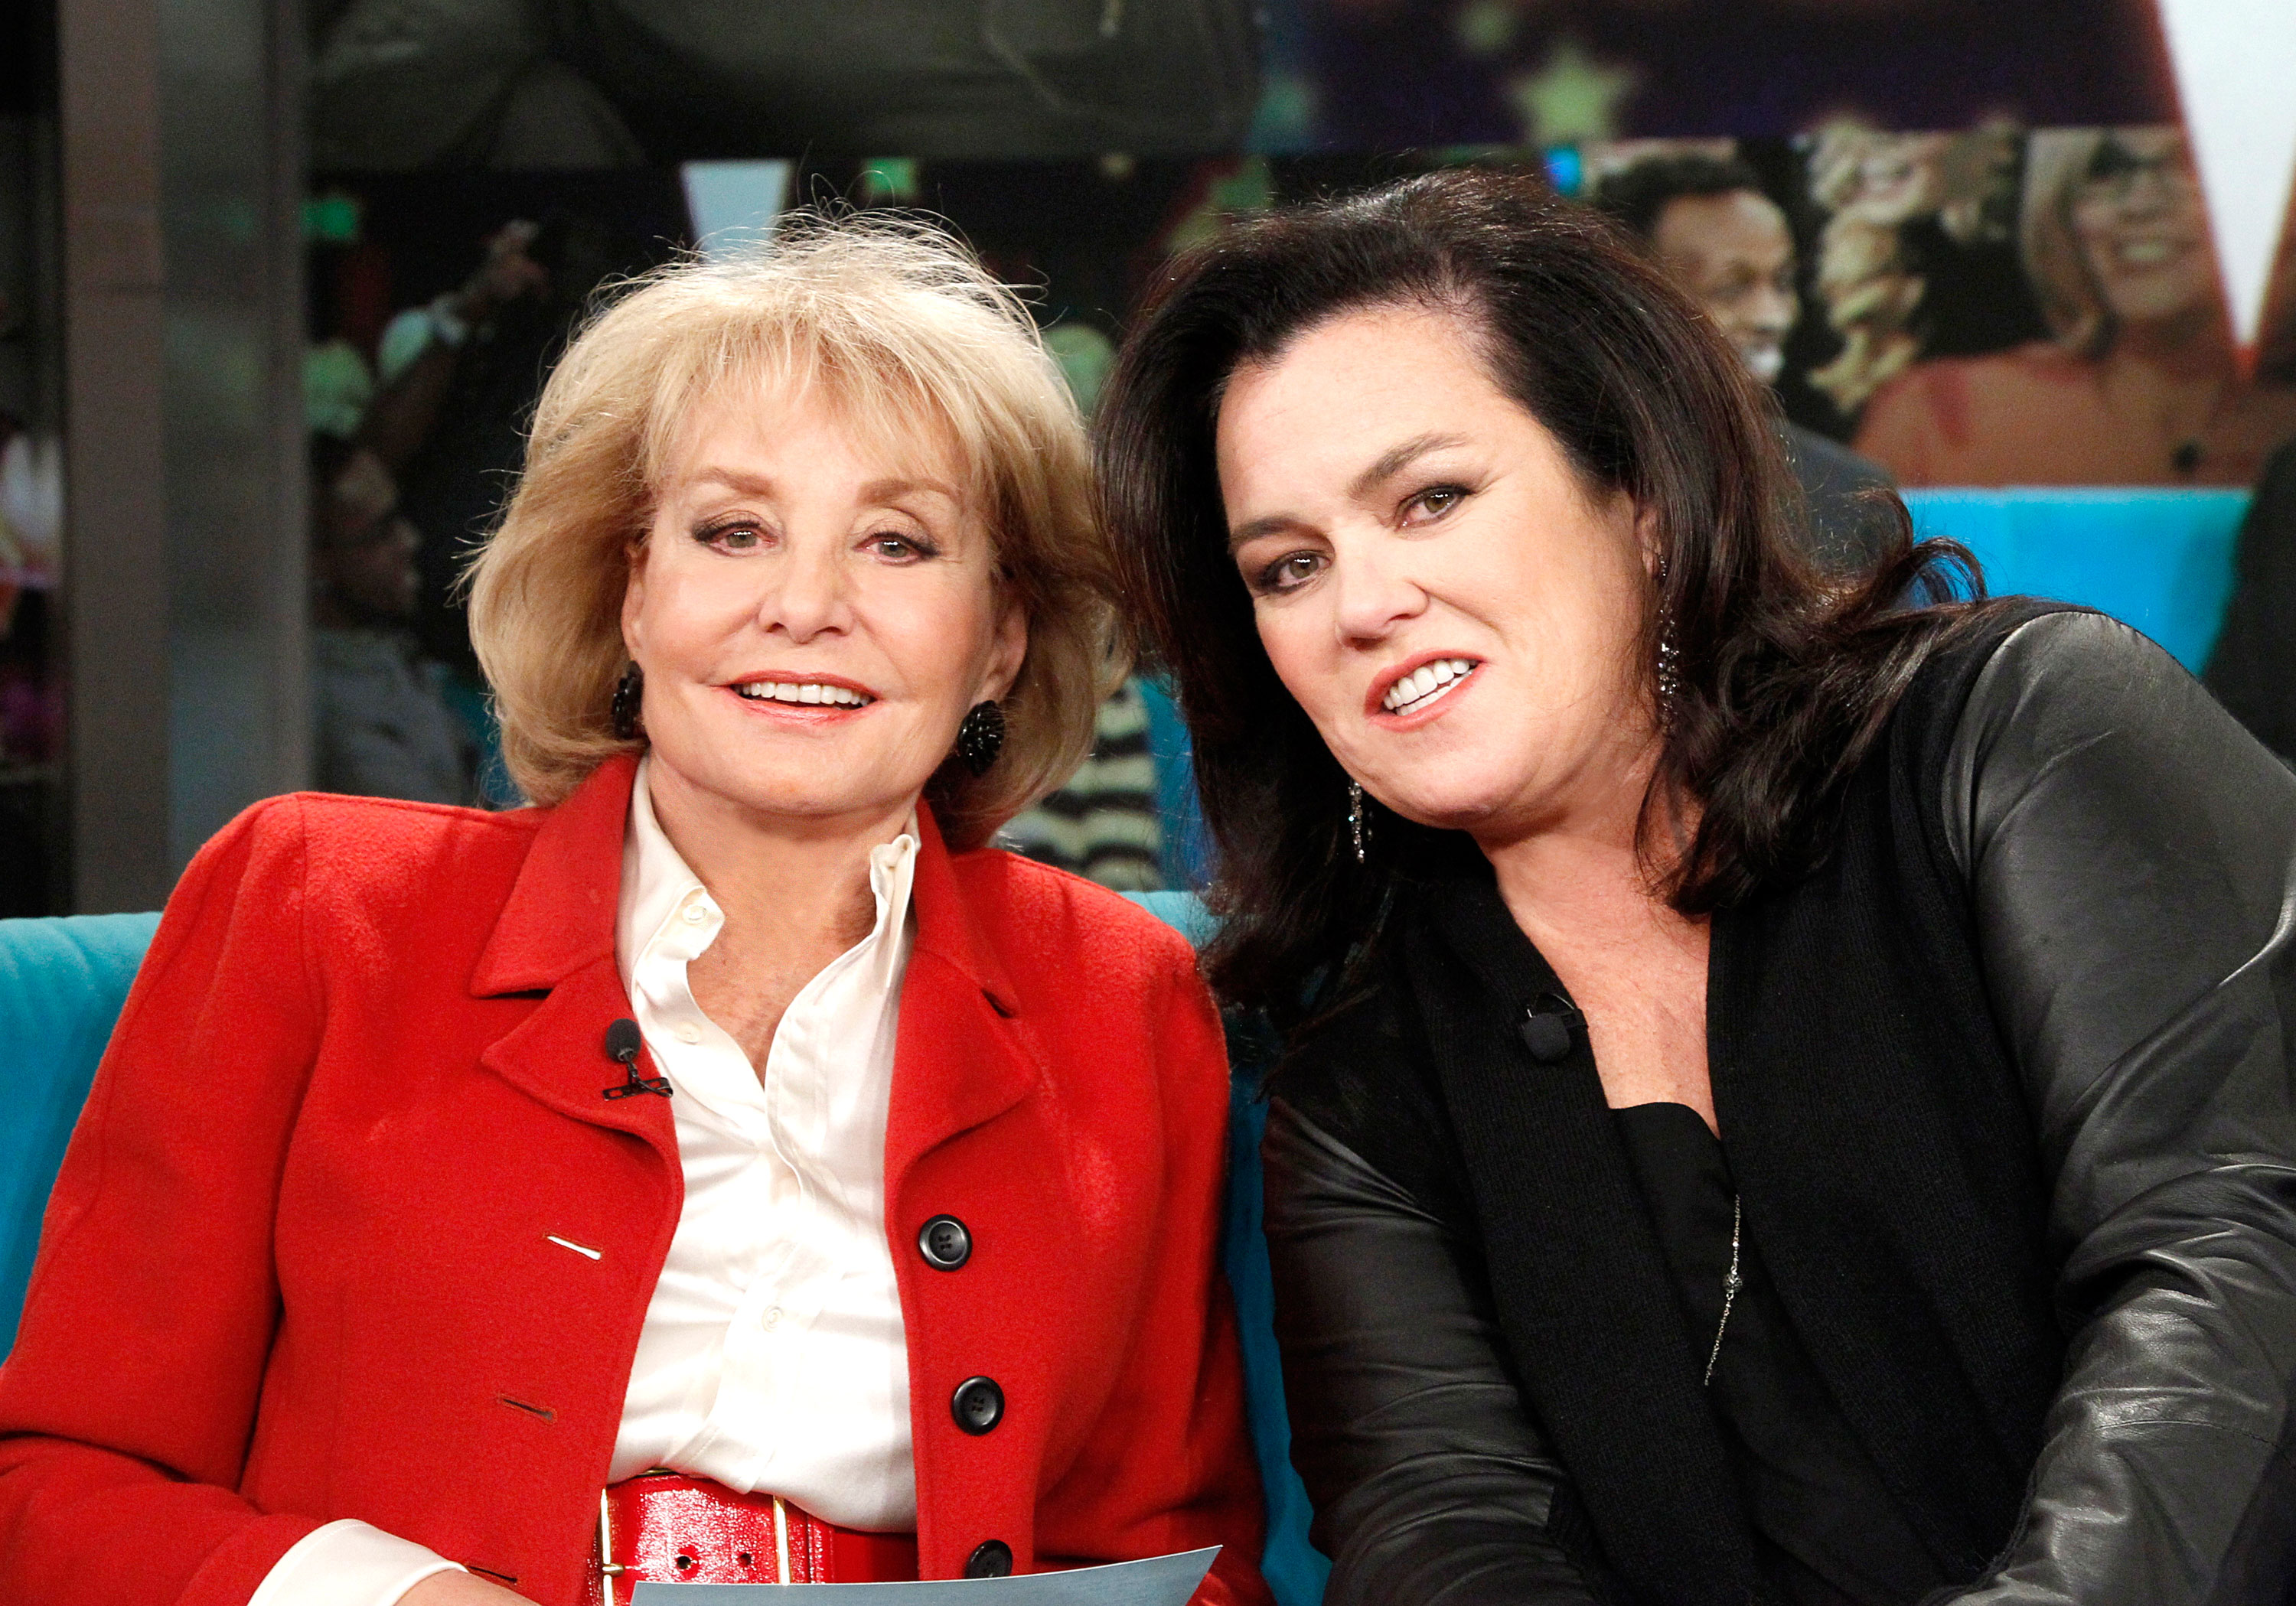 Rosie O'Donnell Says Participating in 'The View' Book Is Her 'Biggest Regret' - Barbara Walters and Rosie O'Donnell on 'The View'.